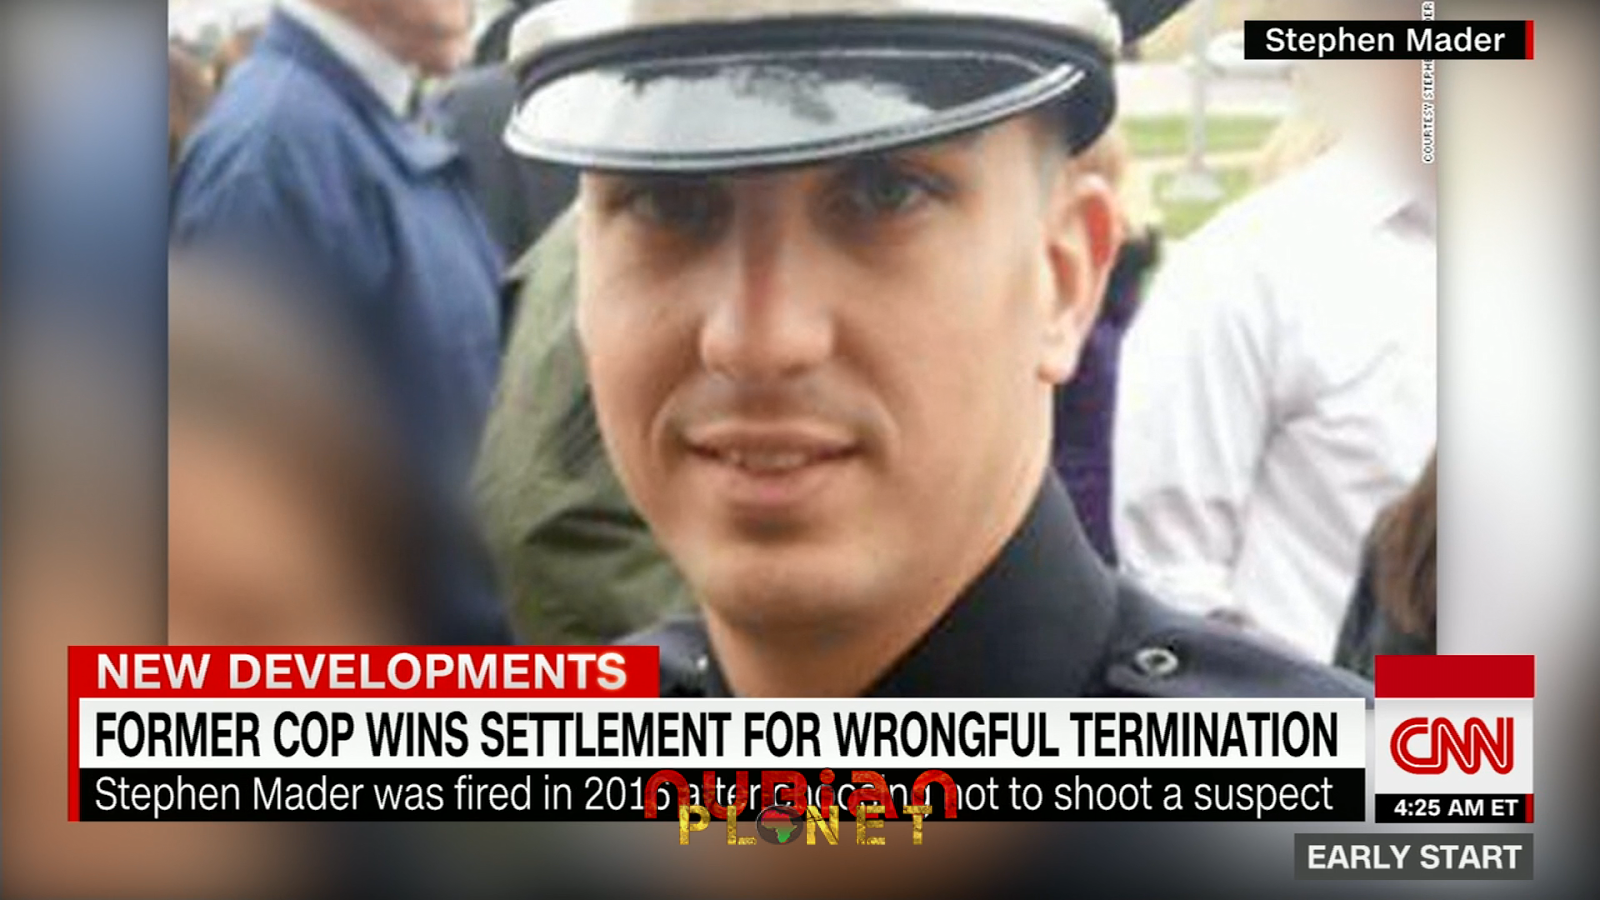 Stephen Mader officer fired for not shooting a black man